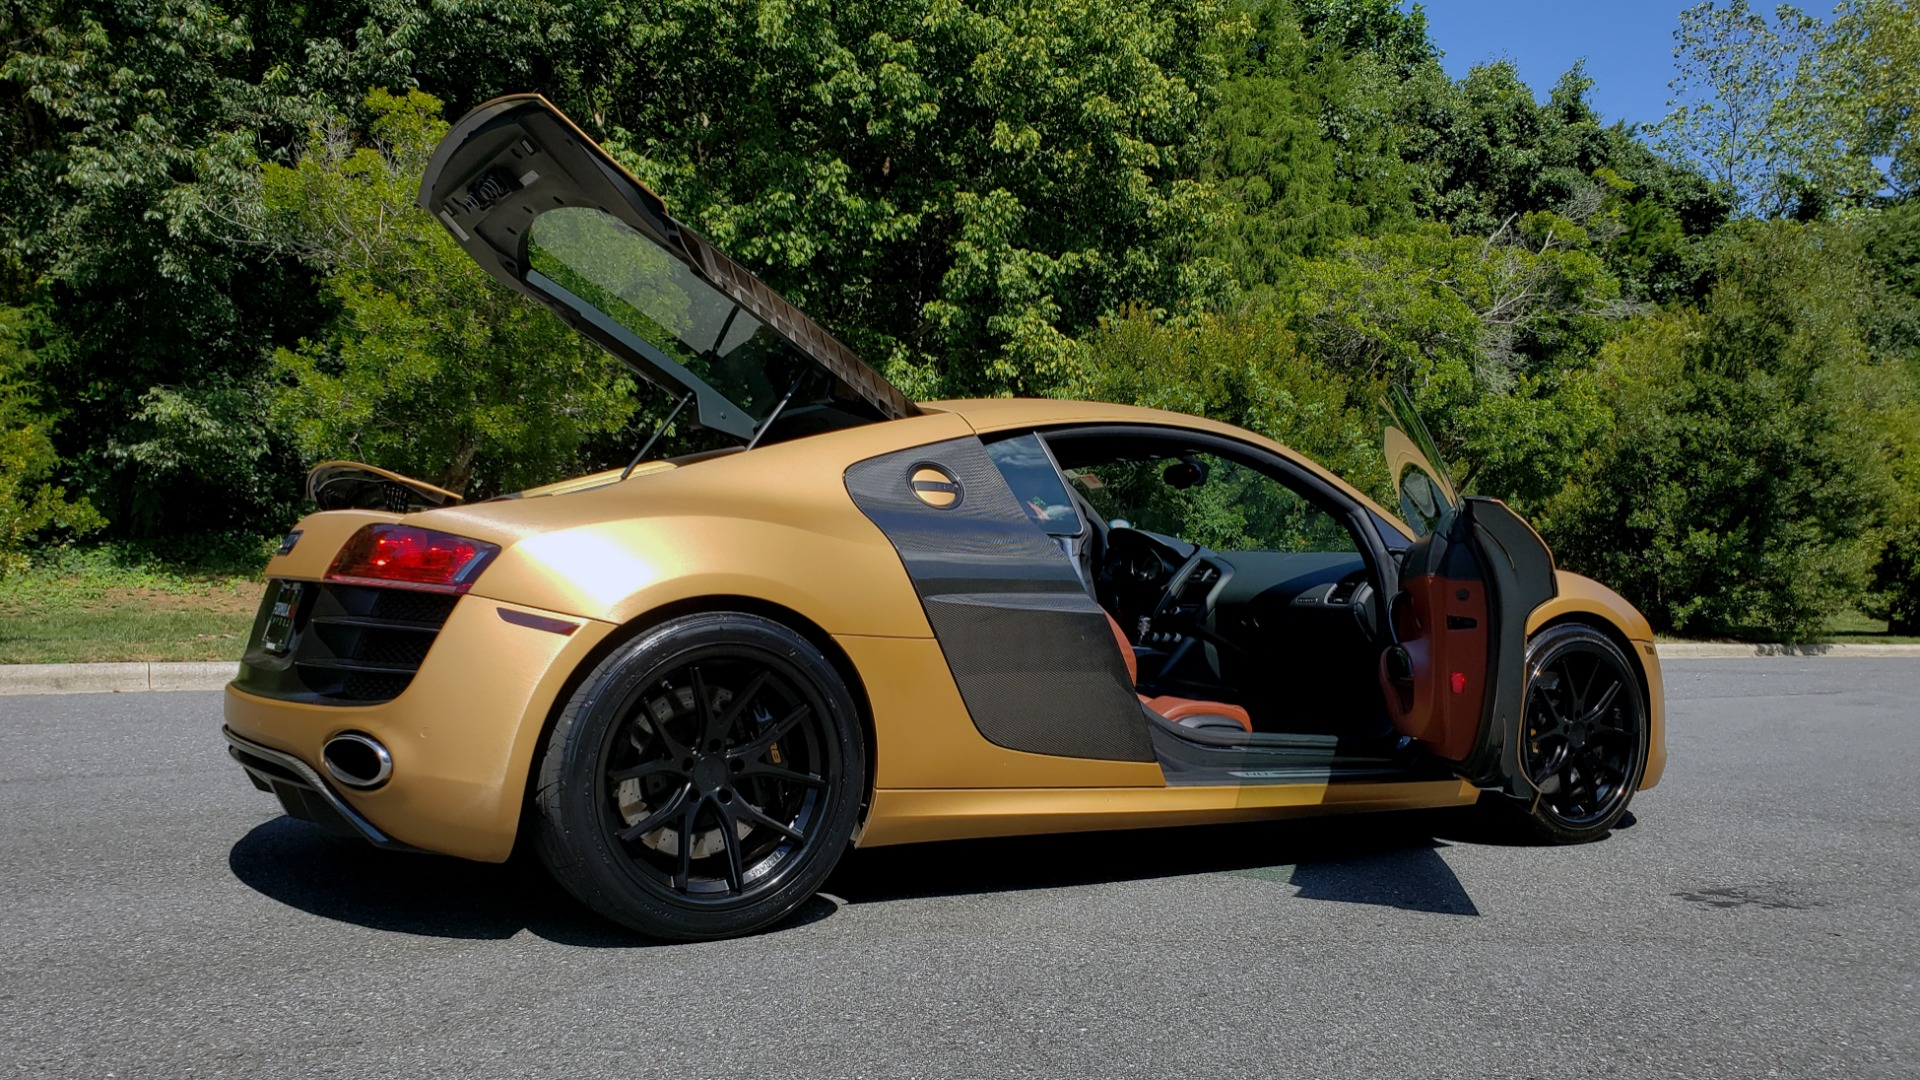 Used 2012 Audi R8 5.2L V10 / AWD / COUPE / NAV / 6-SPD AUTO / CUSTOM WRAP for sale Sold at Formula Imports in Charlotte NC 28227 12